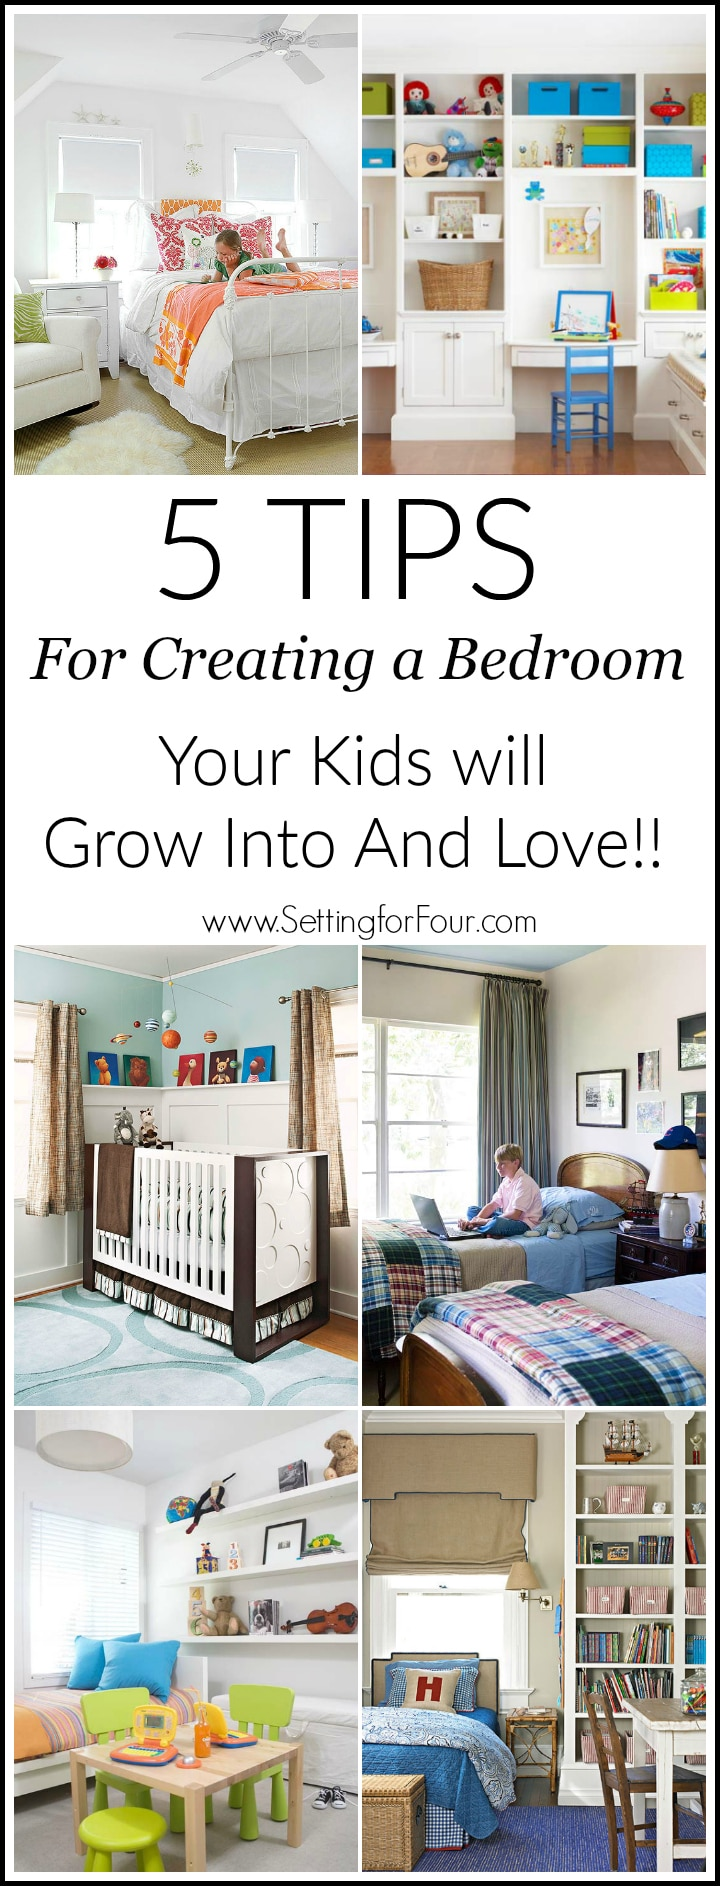 5 decor tips for creating a timeless kids bedroom setting for four - How to decorate kids bedroom ...